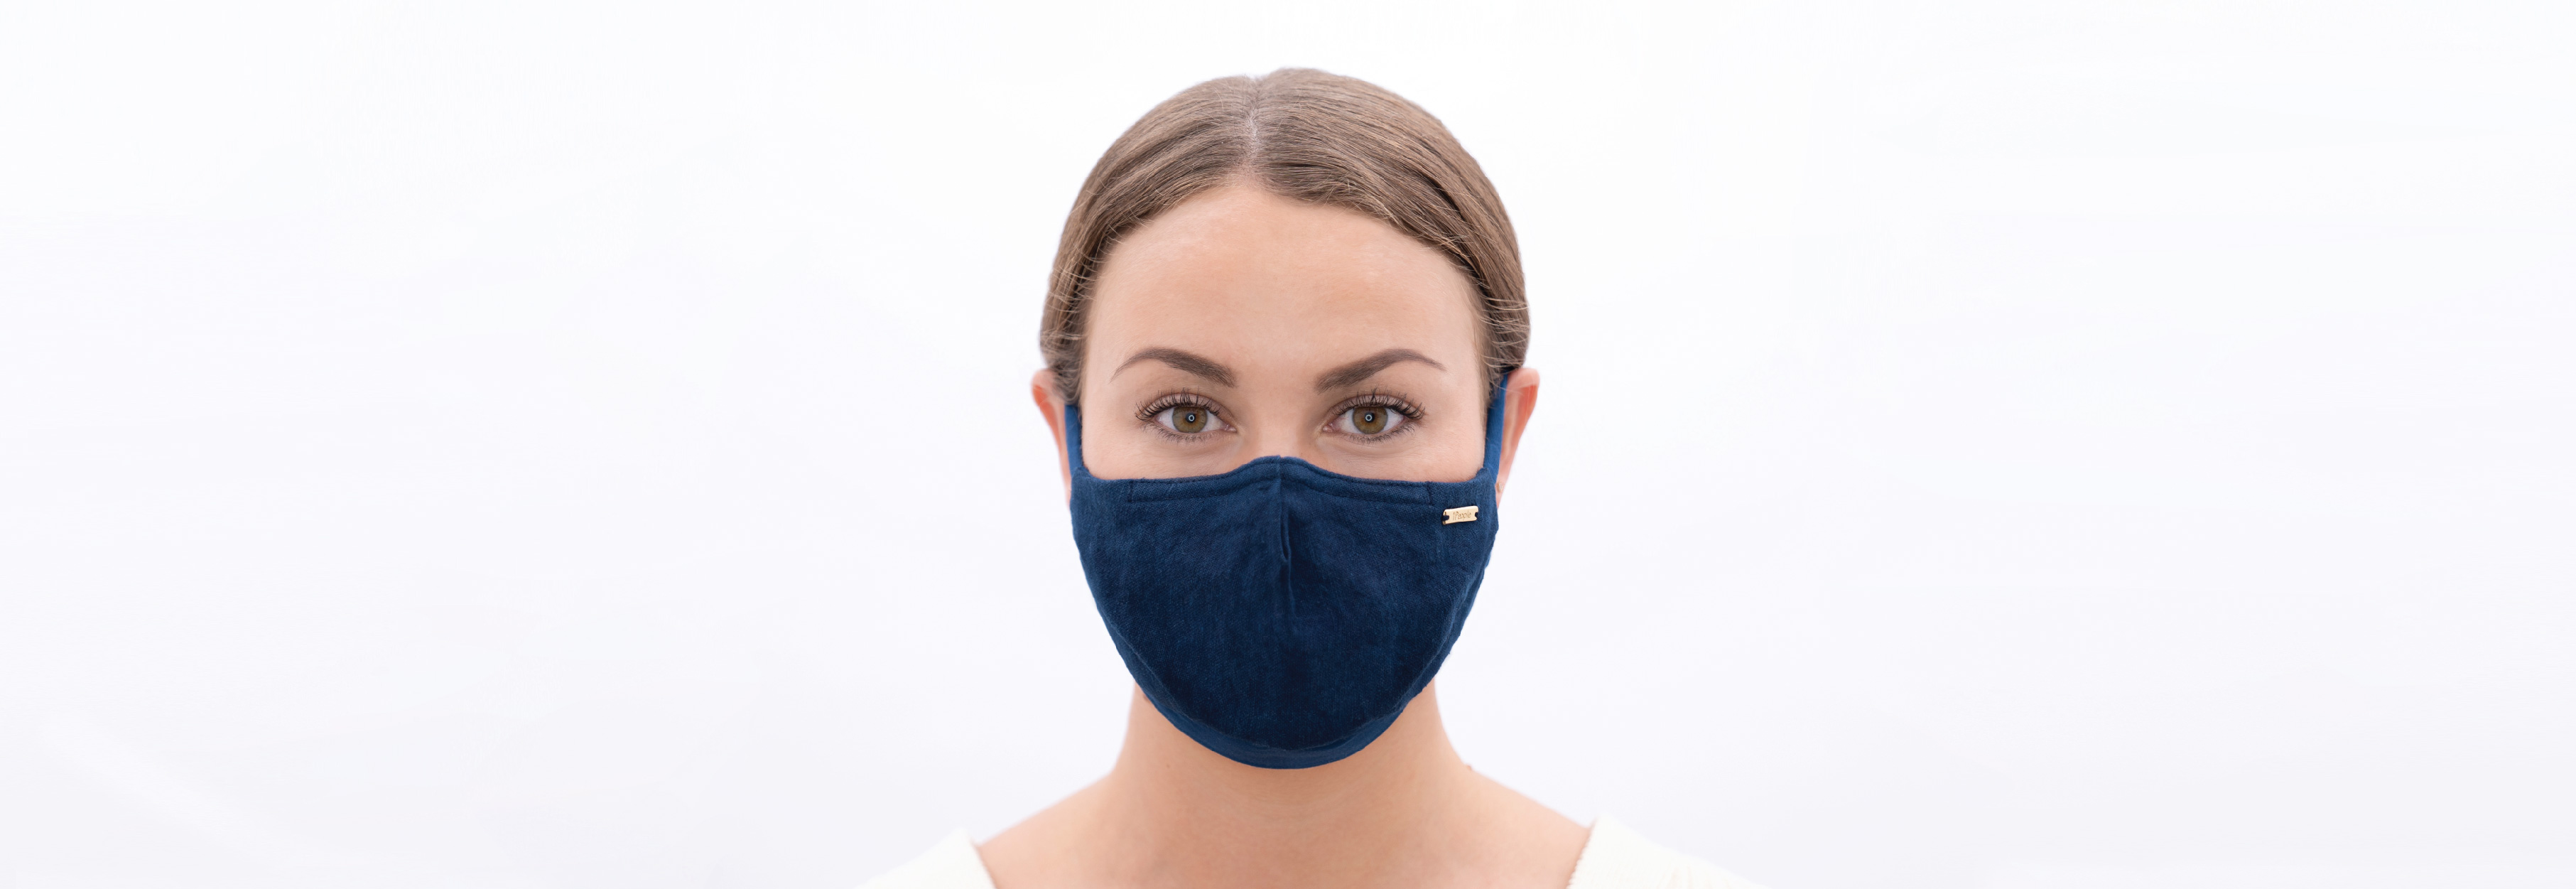 The New Normal, the Uncertainty and the Relevance of Wearing a Mask